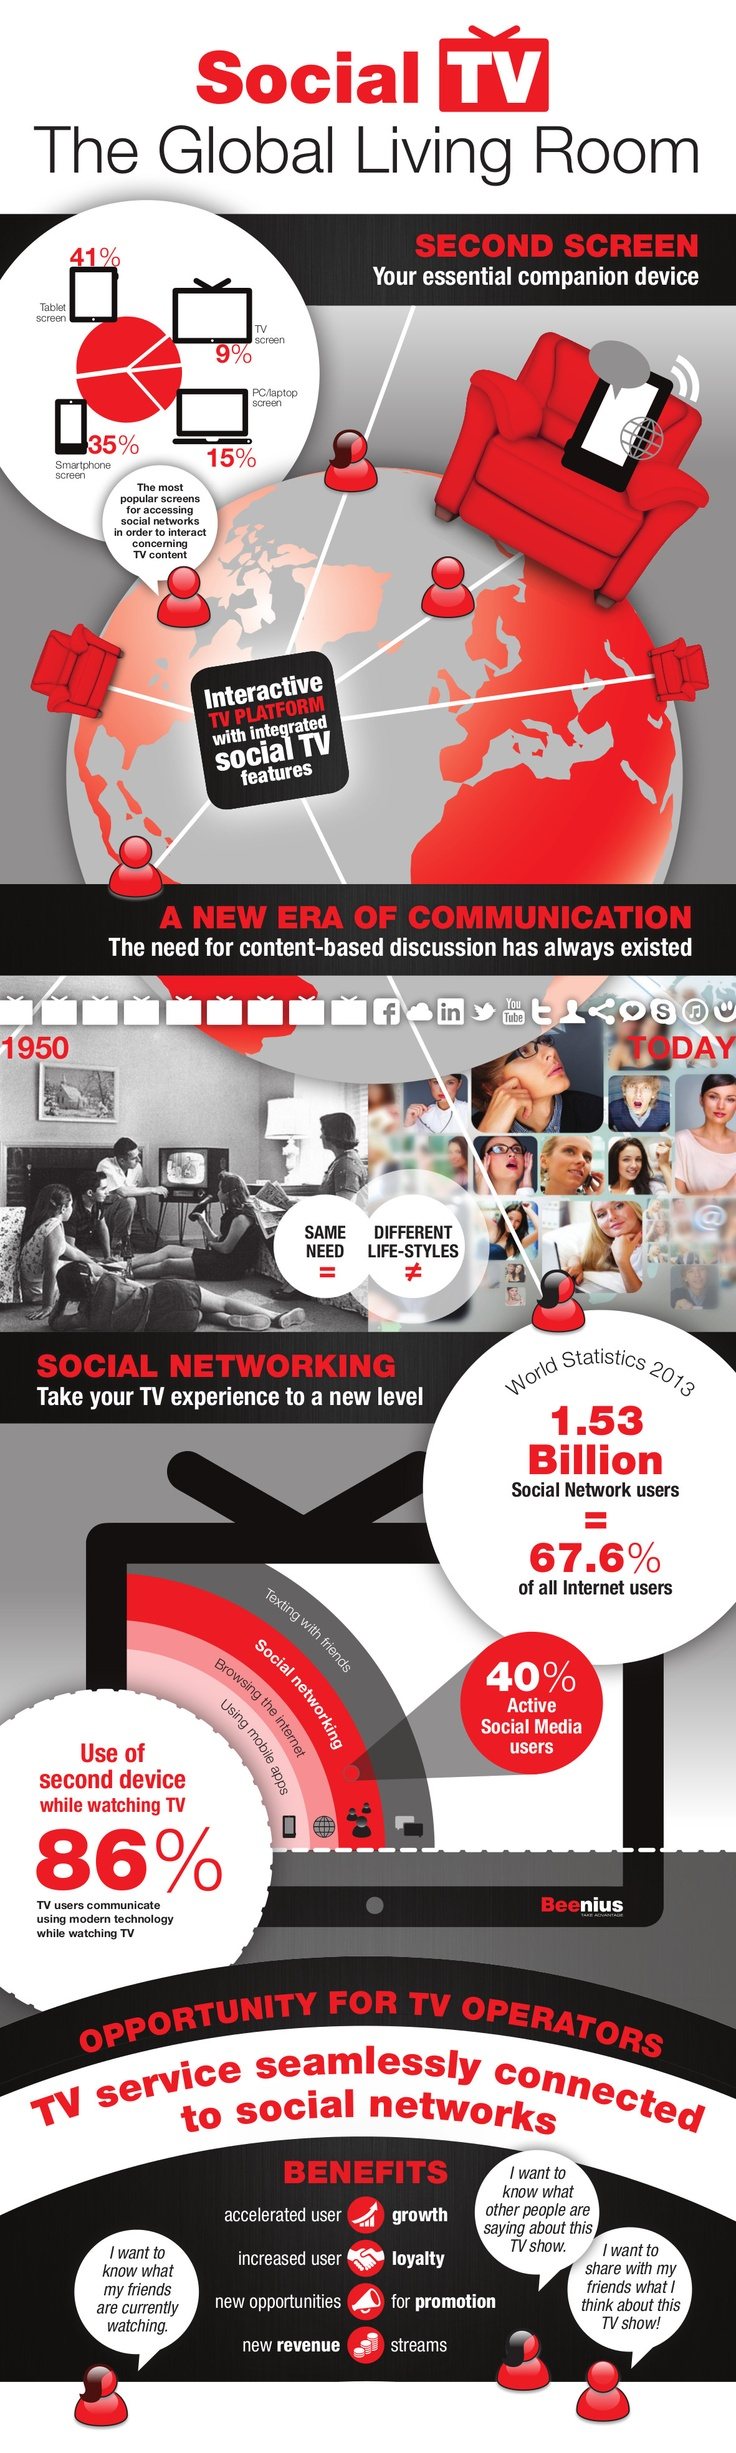 #SocialTV: The Global Living Room - The lifestyle of today's end users demands the integration of social networks into TV services.